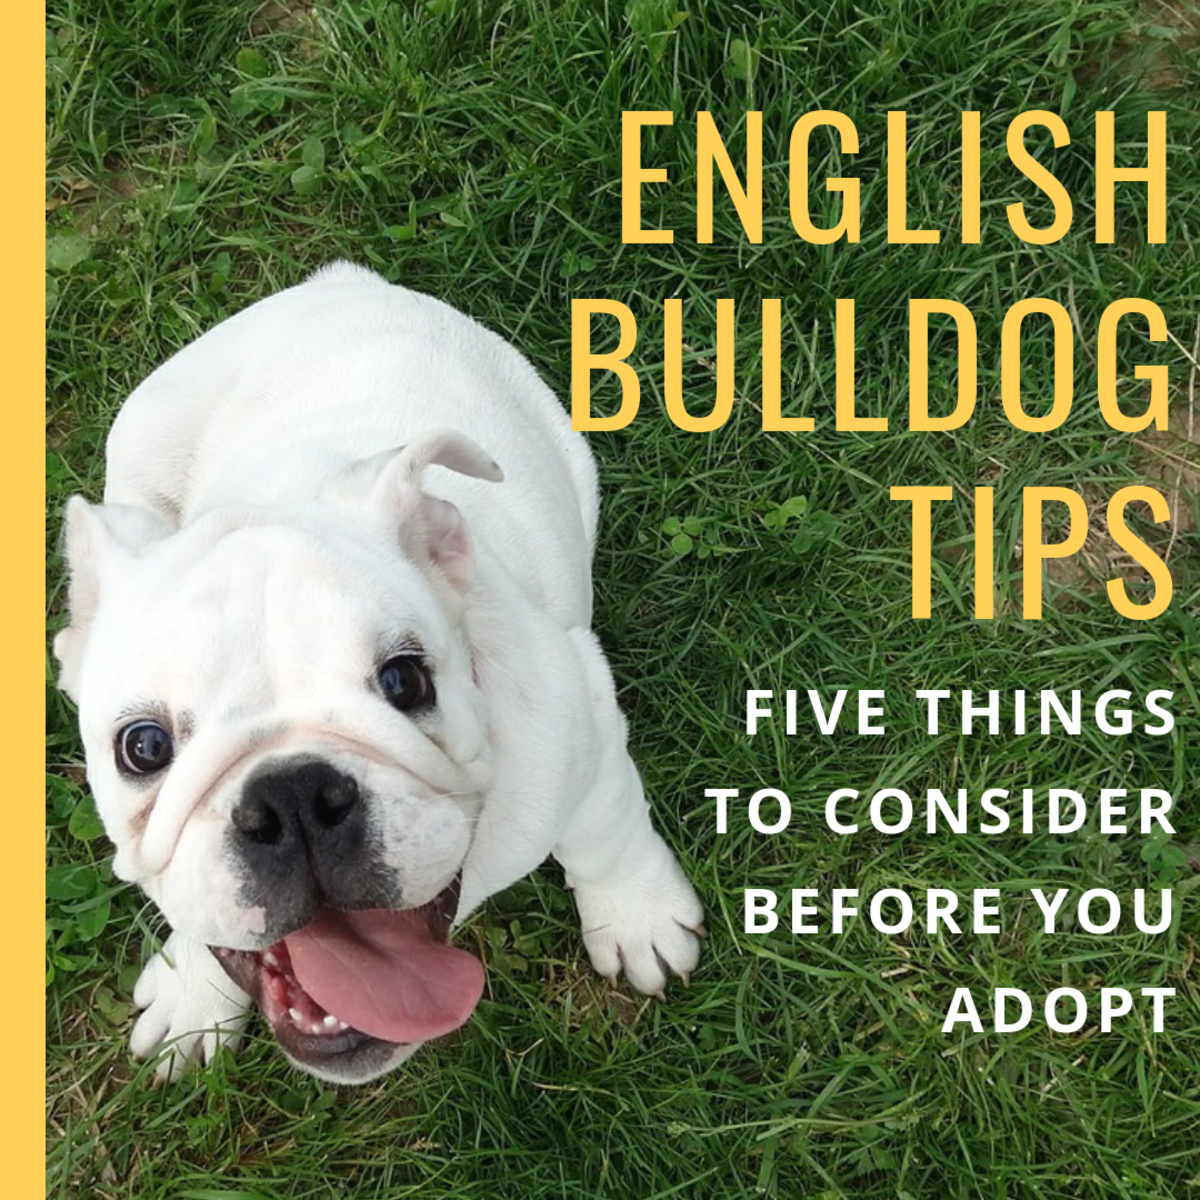 5 Things to Consider Before Owning an English Bulldog